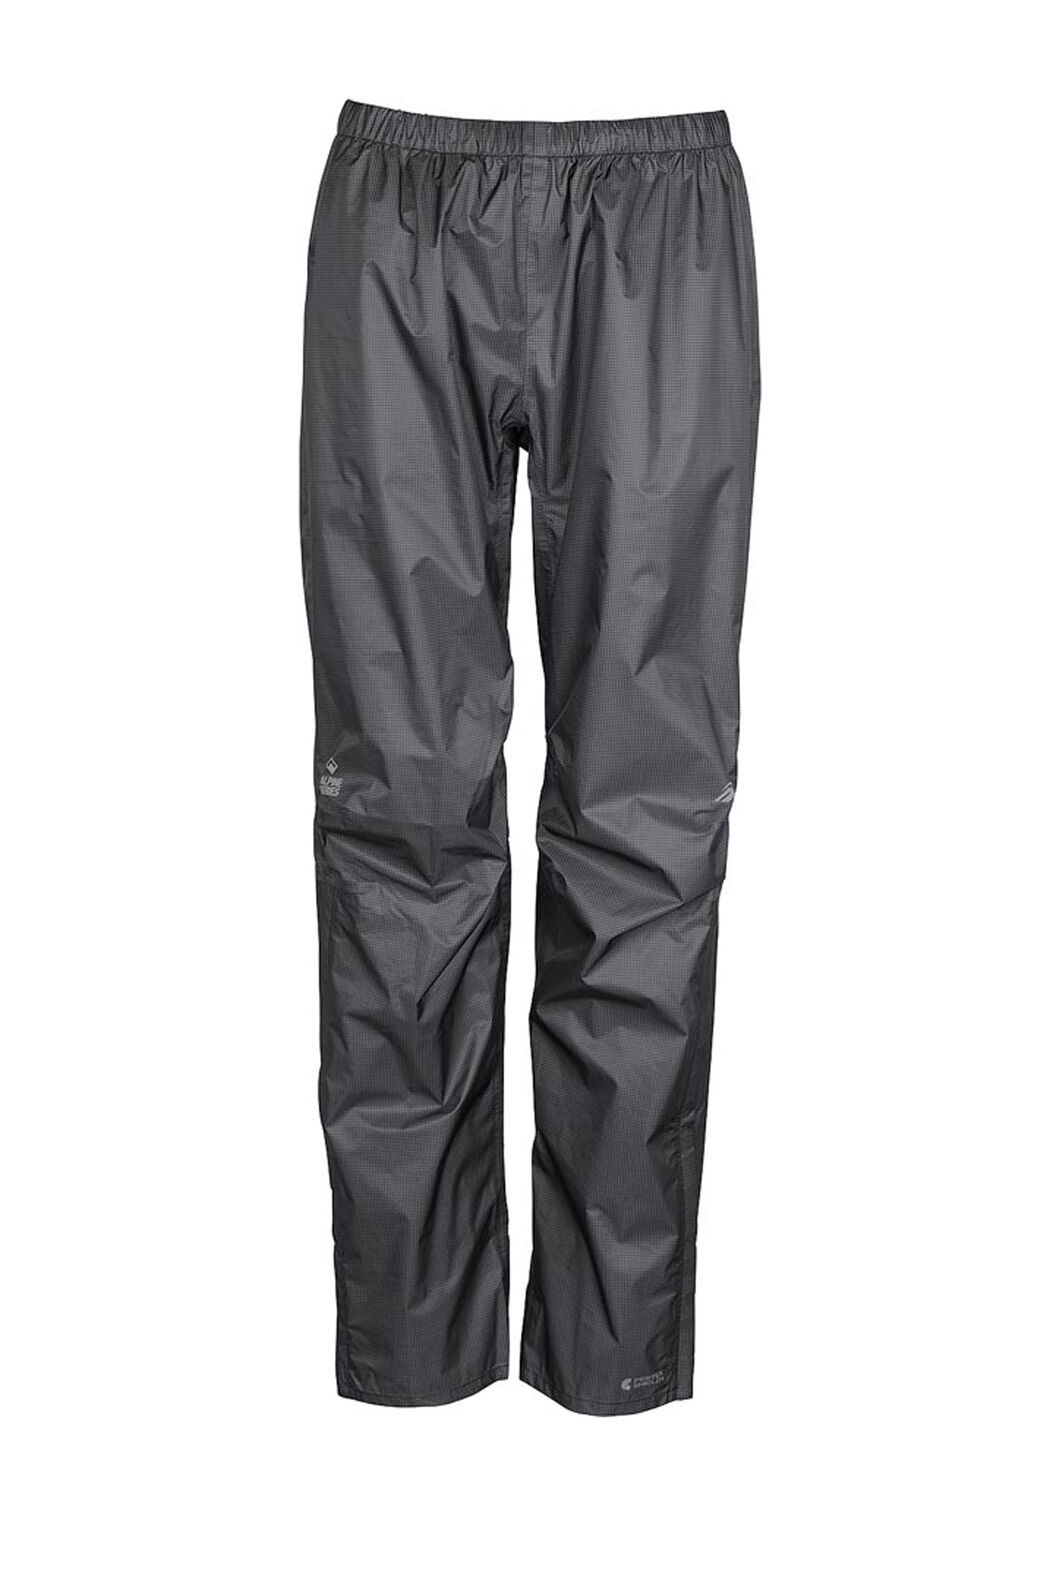 Macpac Hightail Pertex® Shield Rain Pants - Women's, Black, hi-res